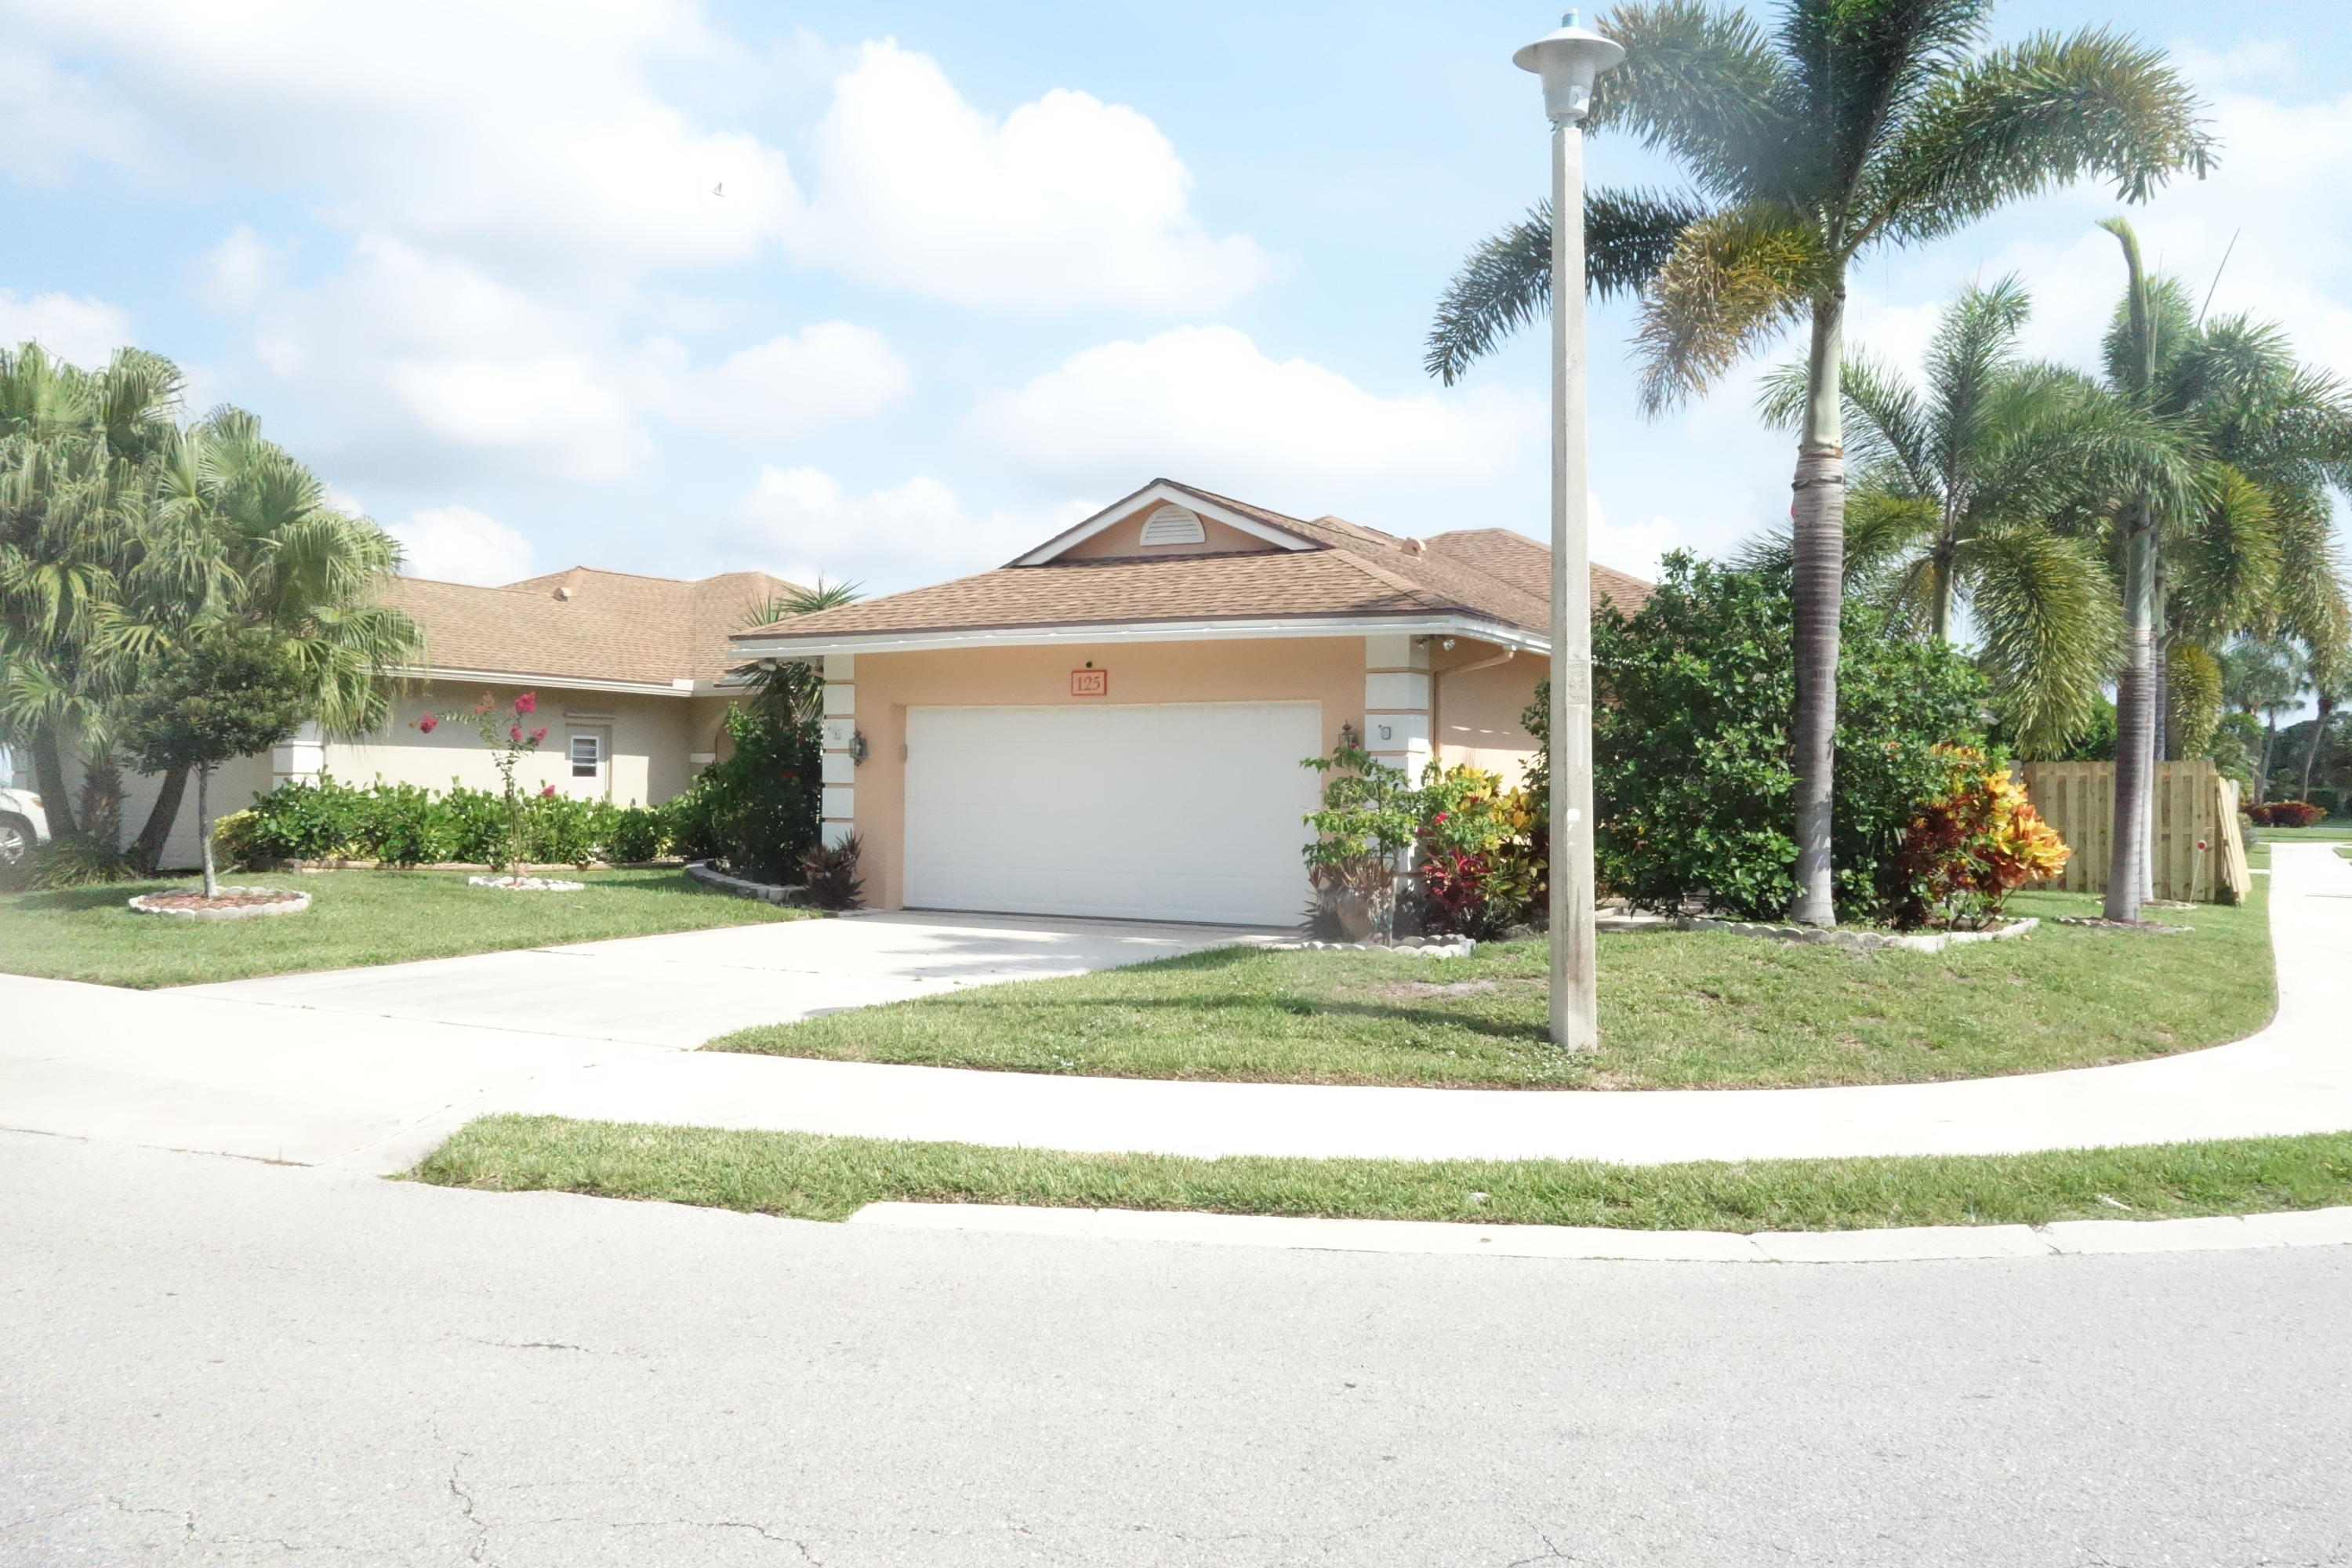 SIMS CREEK OF JUPITER HOMES FOR SALE